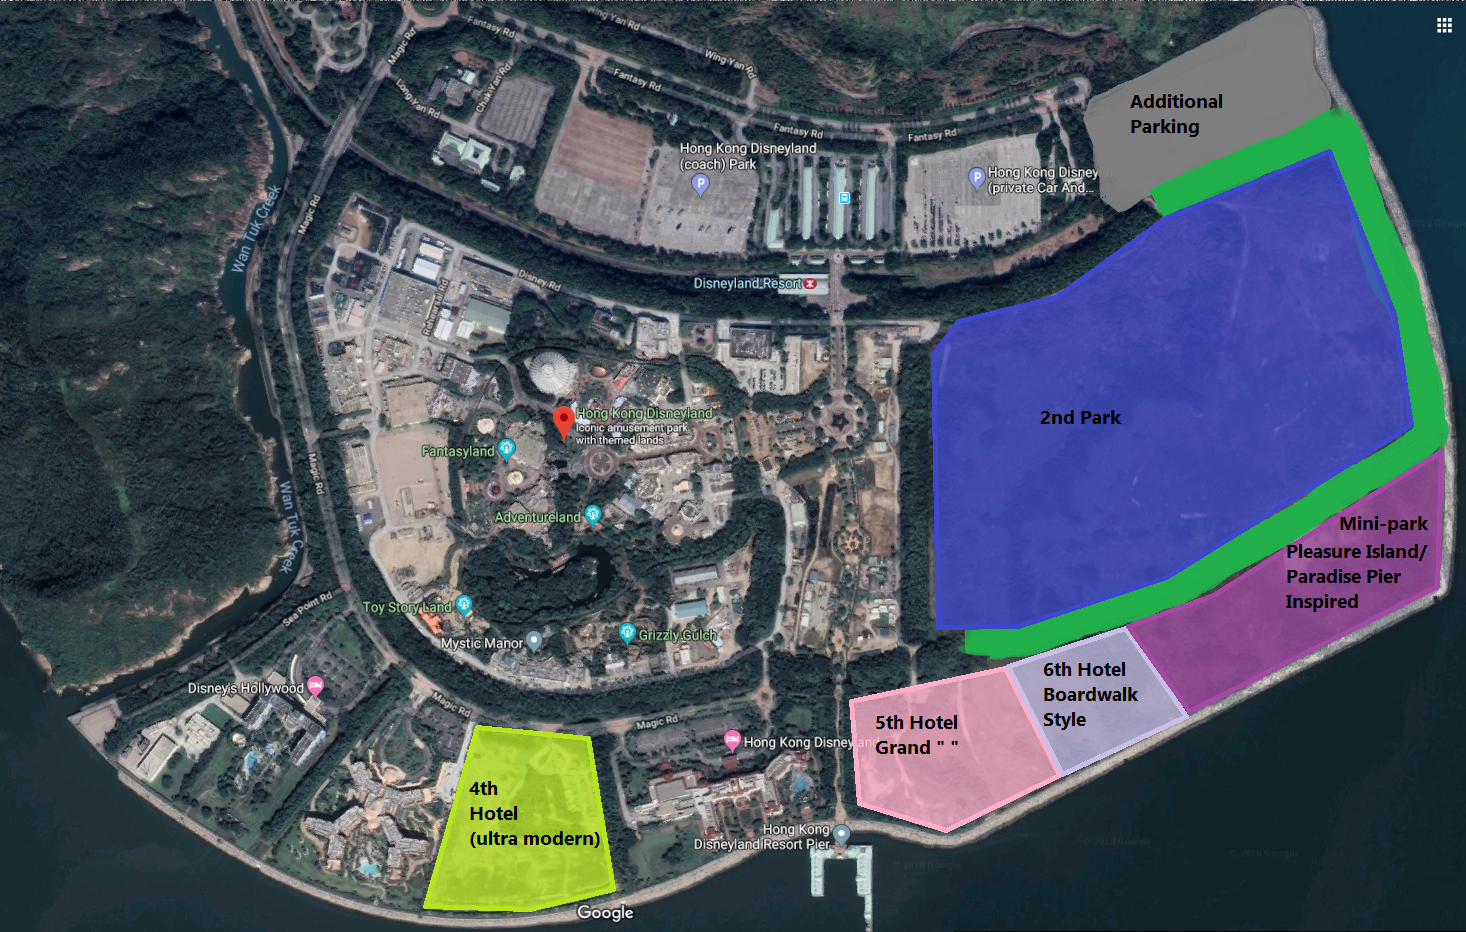 marketing plan for hong kong disneyland Expert marketing advice on strategy: hong kong disneyland and ocean park posted by anonymous, question 18902.